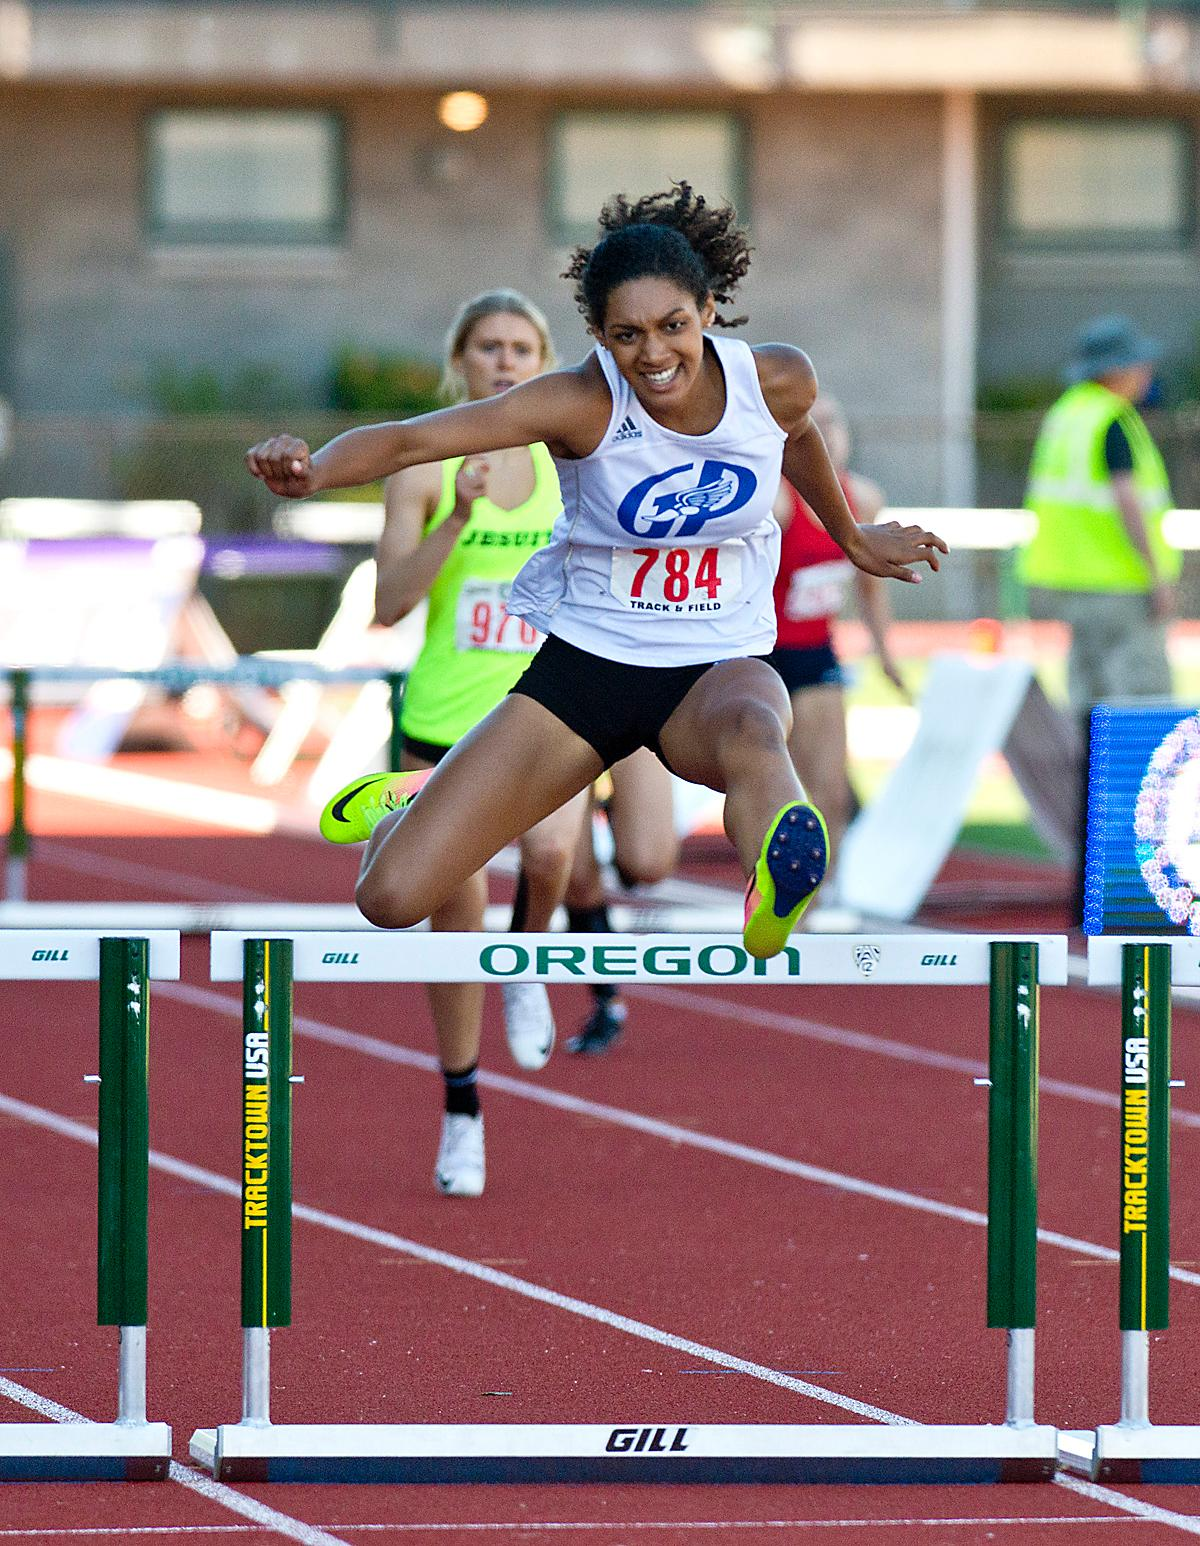 Deshae Wise from Grants Pass wins the 6A Girls 300 Low Hurdles with a time of 42.86 at the OSAA Championship at Hayward Field on Saturday. Photo by Dan Morrison, Oregon News Lab